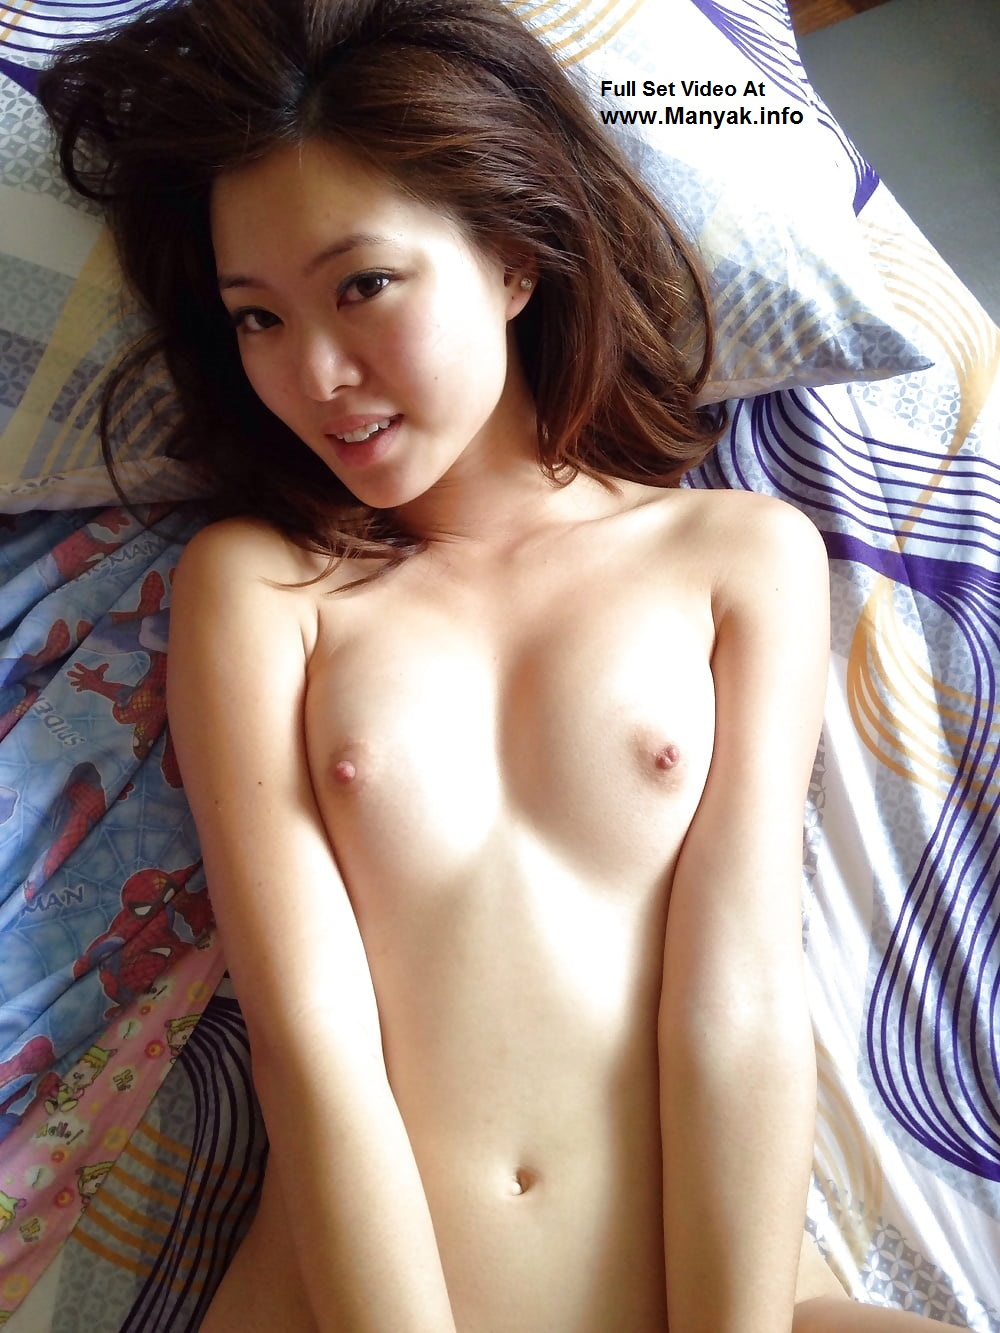 Beautiful Singaporean Teen Leaked Sex Video New Viral Nude -4134